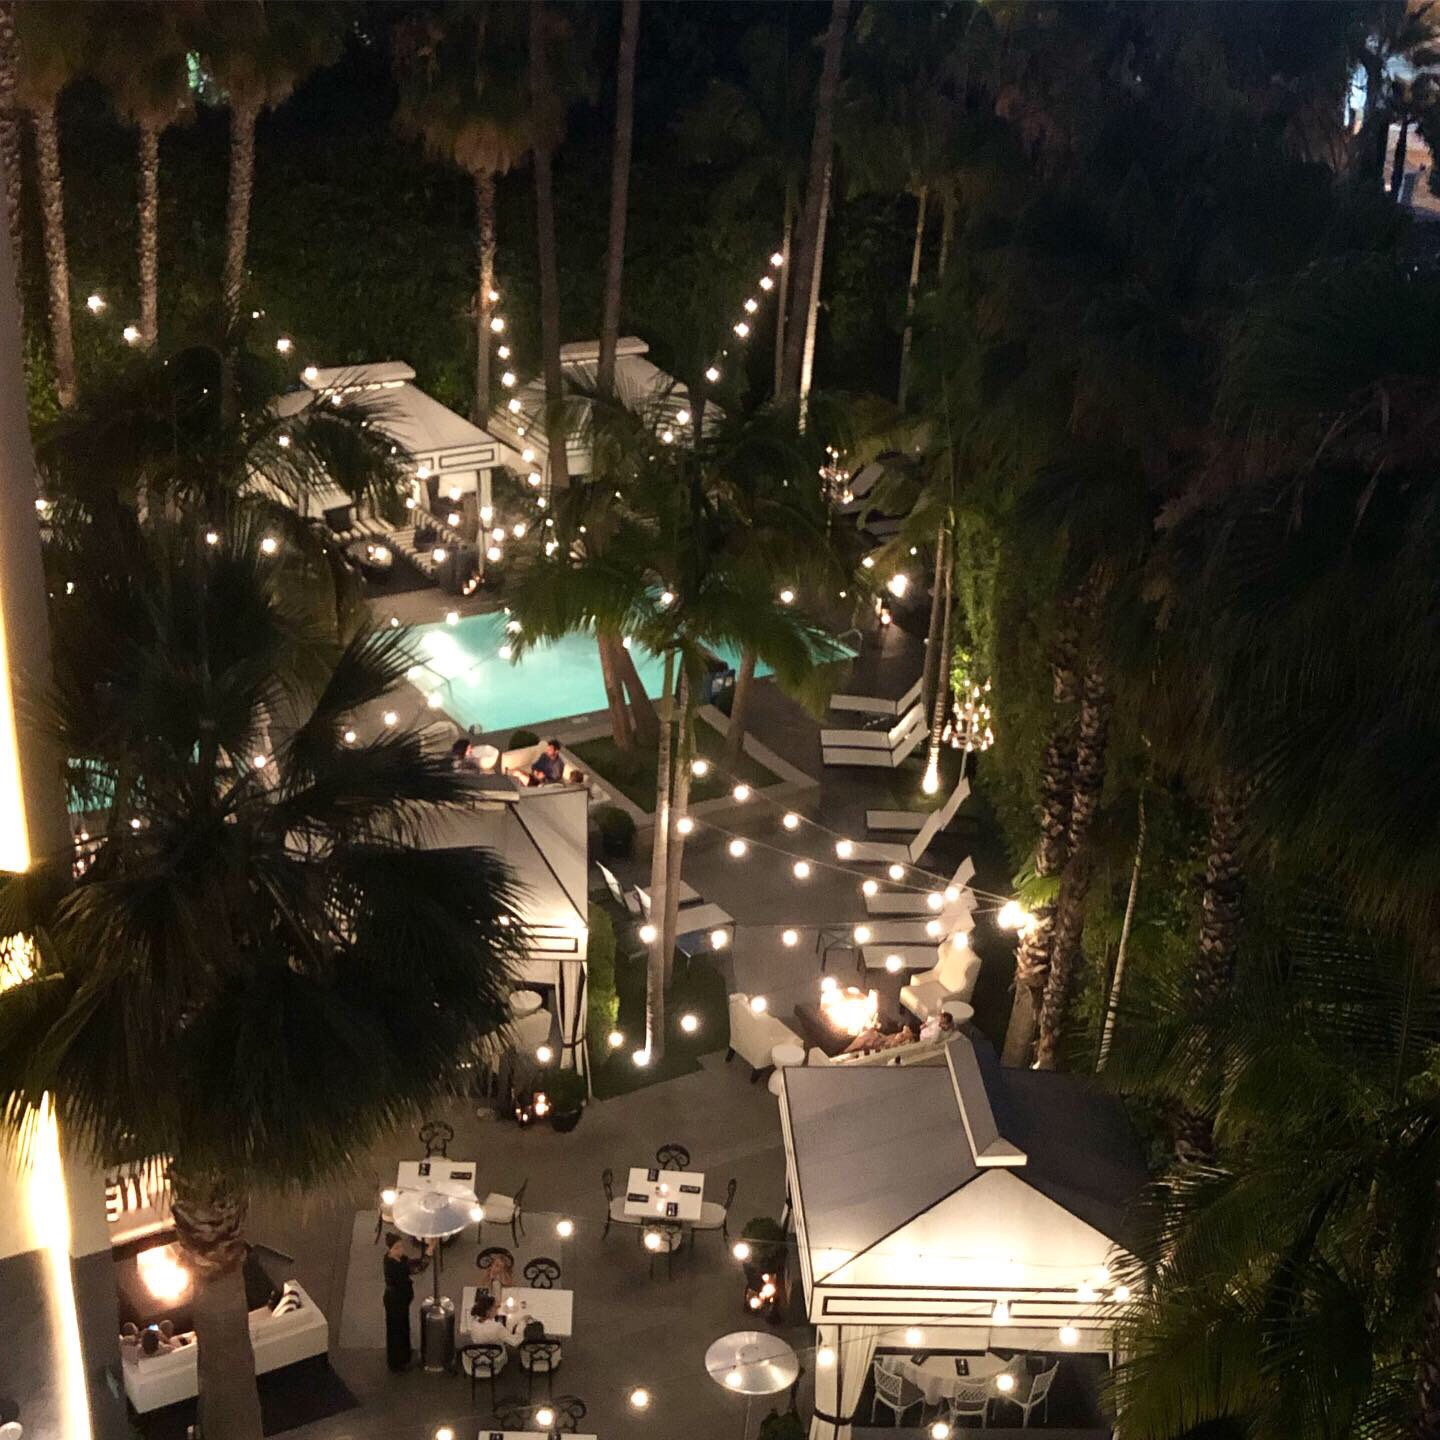 Nightcap at our dreamy hotel, The Viceroy.